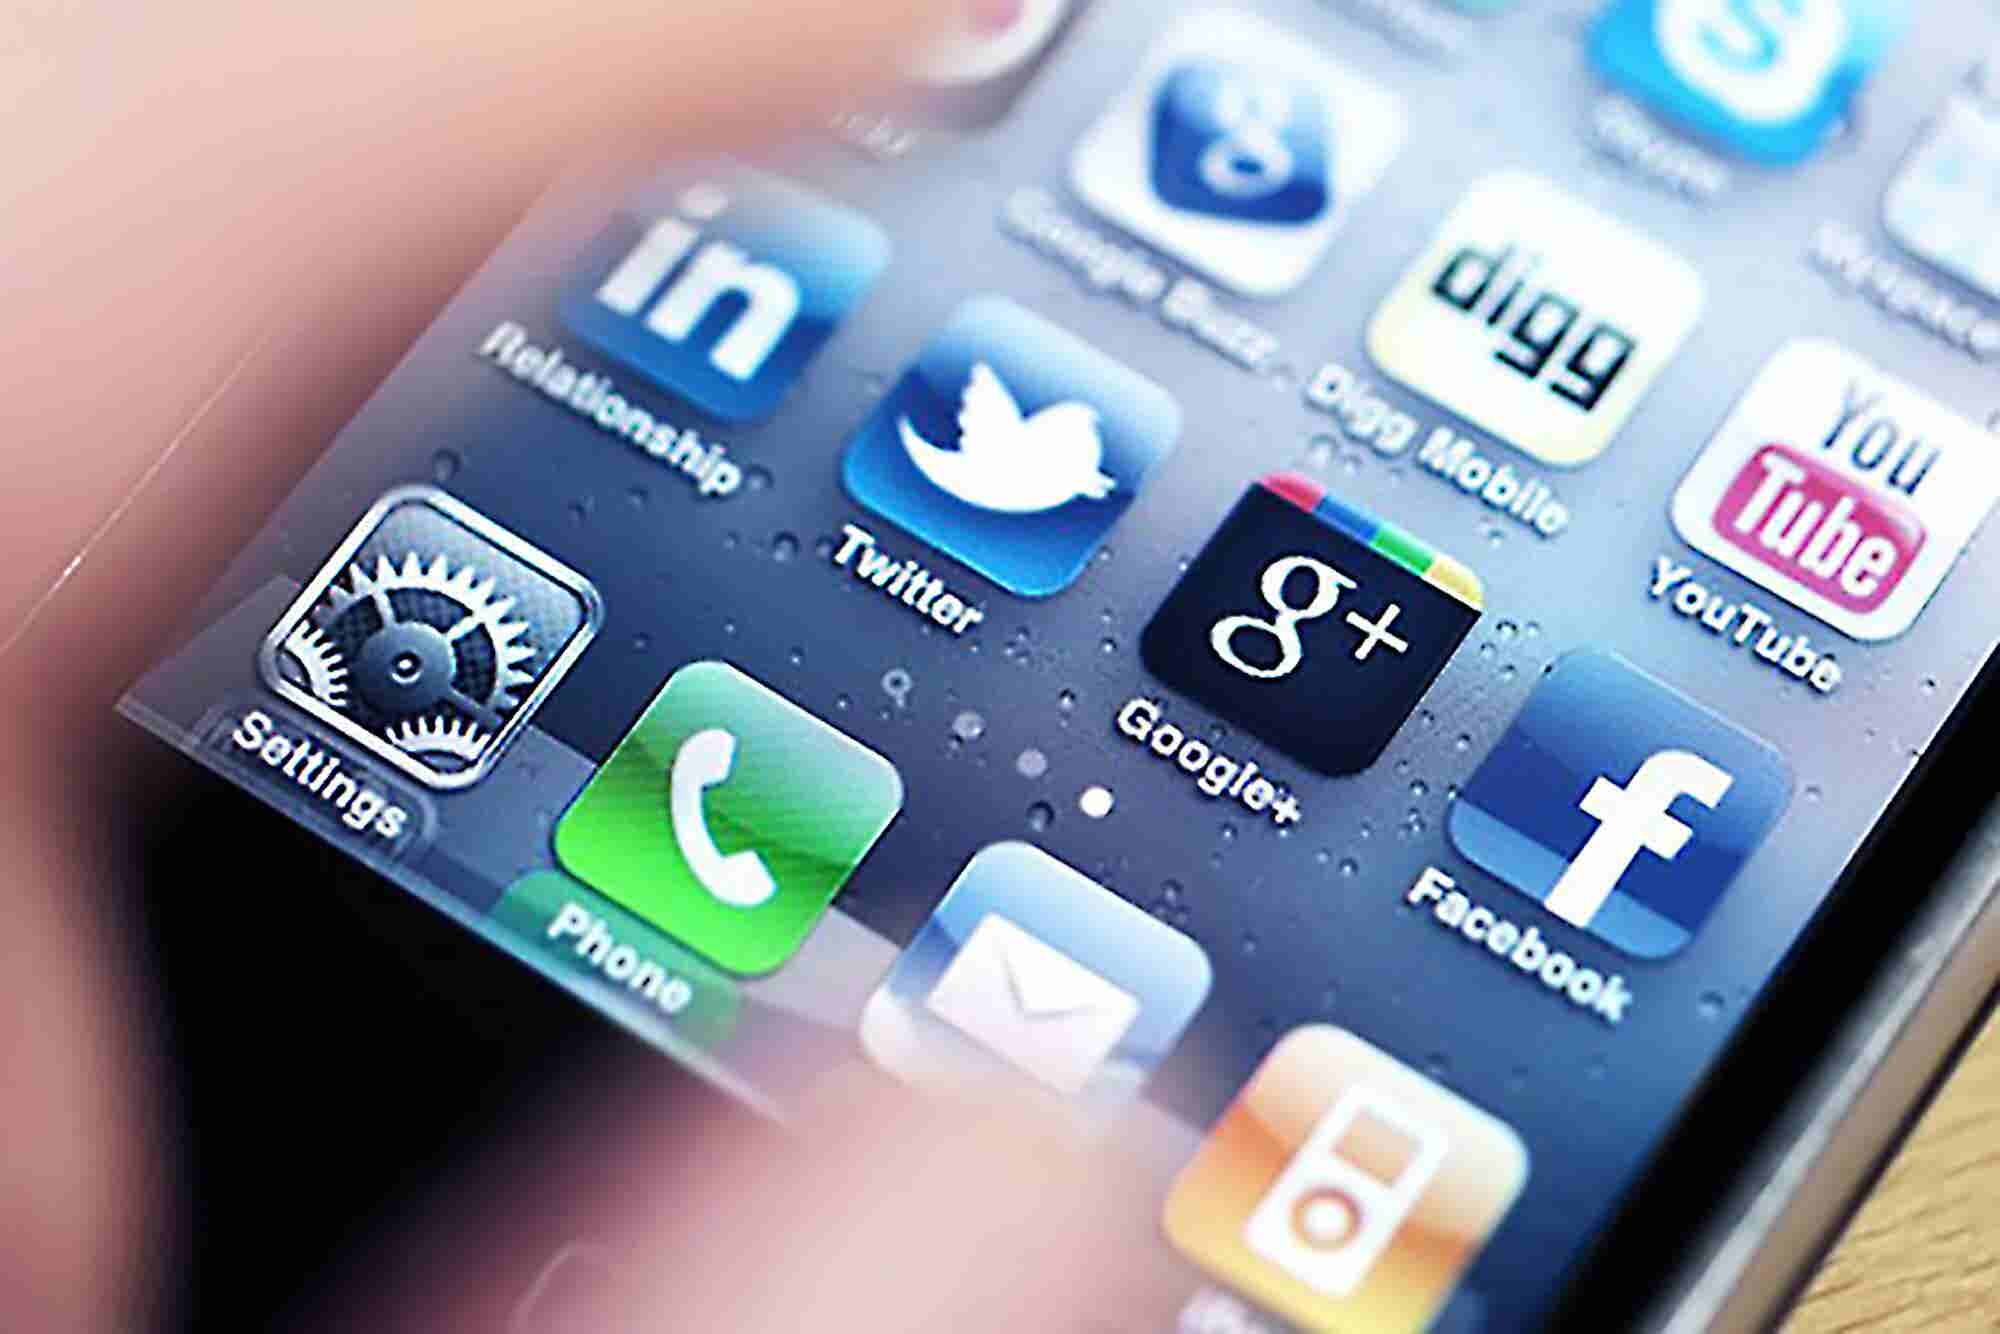 New Study Details Who Is Using Social Media and When